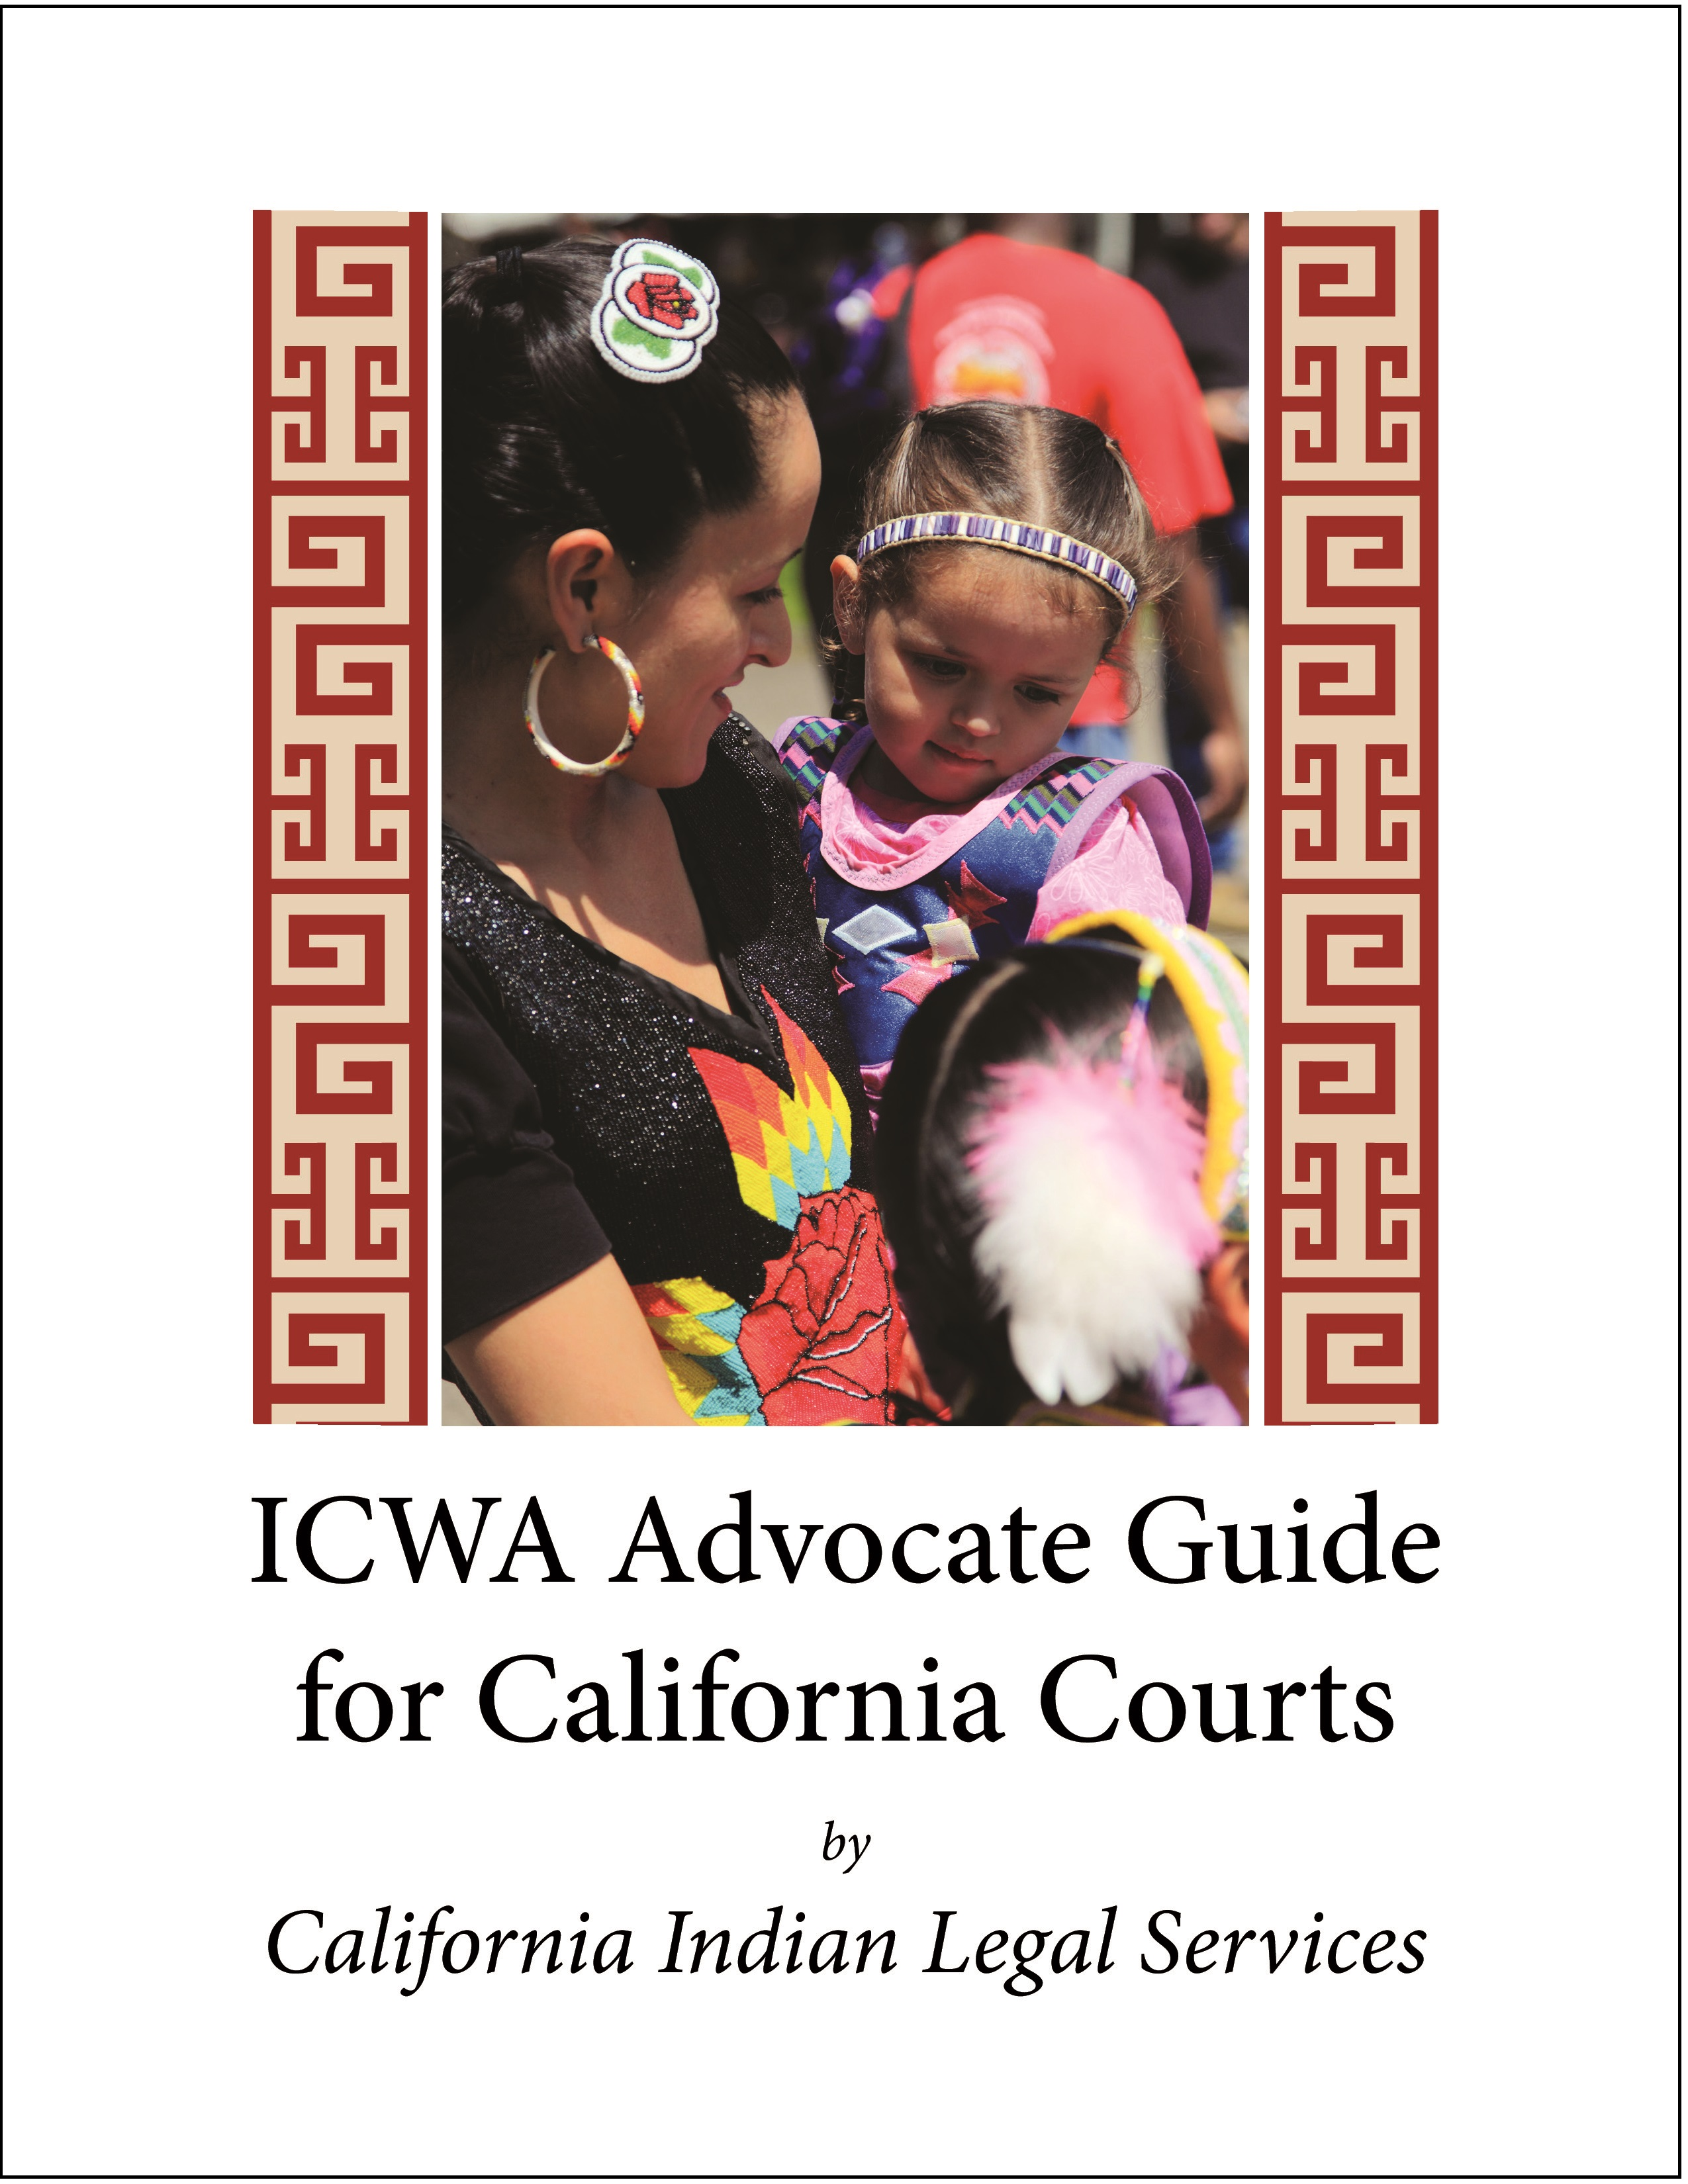 indian child welfare act policy analysis Congress enacted the indian child welfare act (icwa), 25 usc 1901 et seq, in 1978 to address an indian child welfare crisis [ ] of massive proportions: an estimated 25 to 35 percent of all indian children had been separated from their families and placed in adoptive homes, foster care, or institutions.